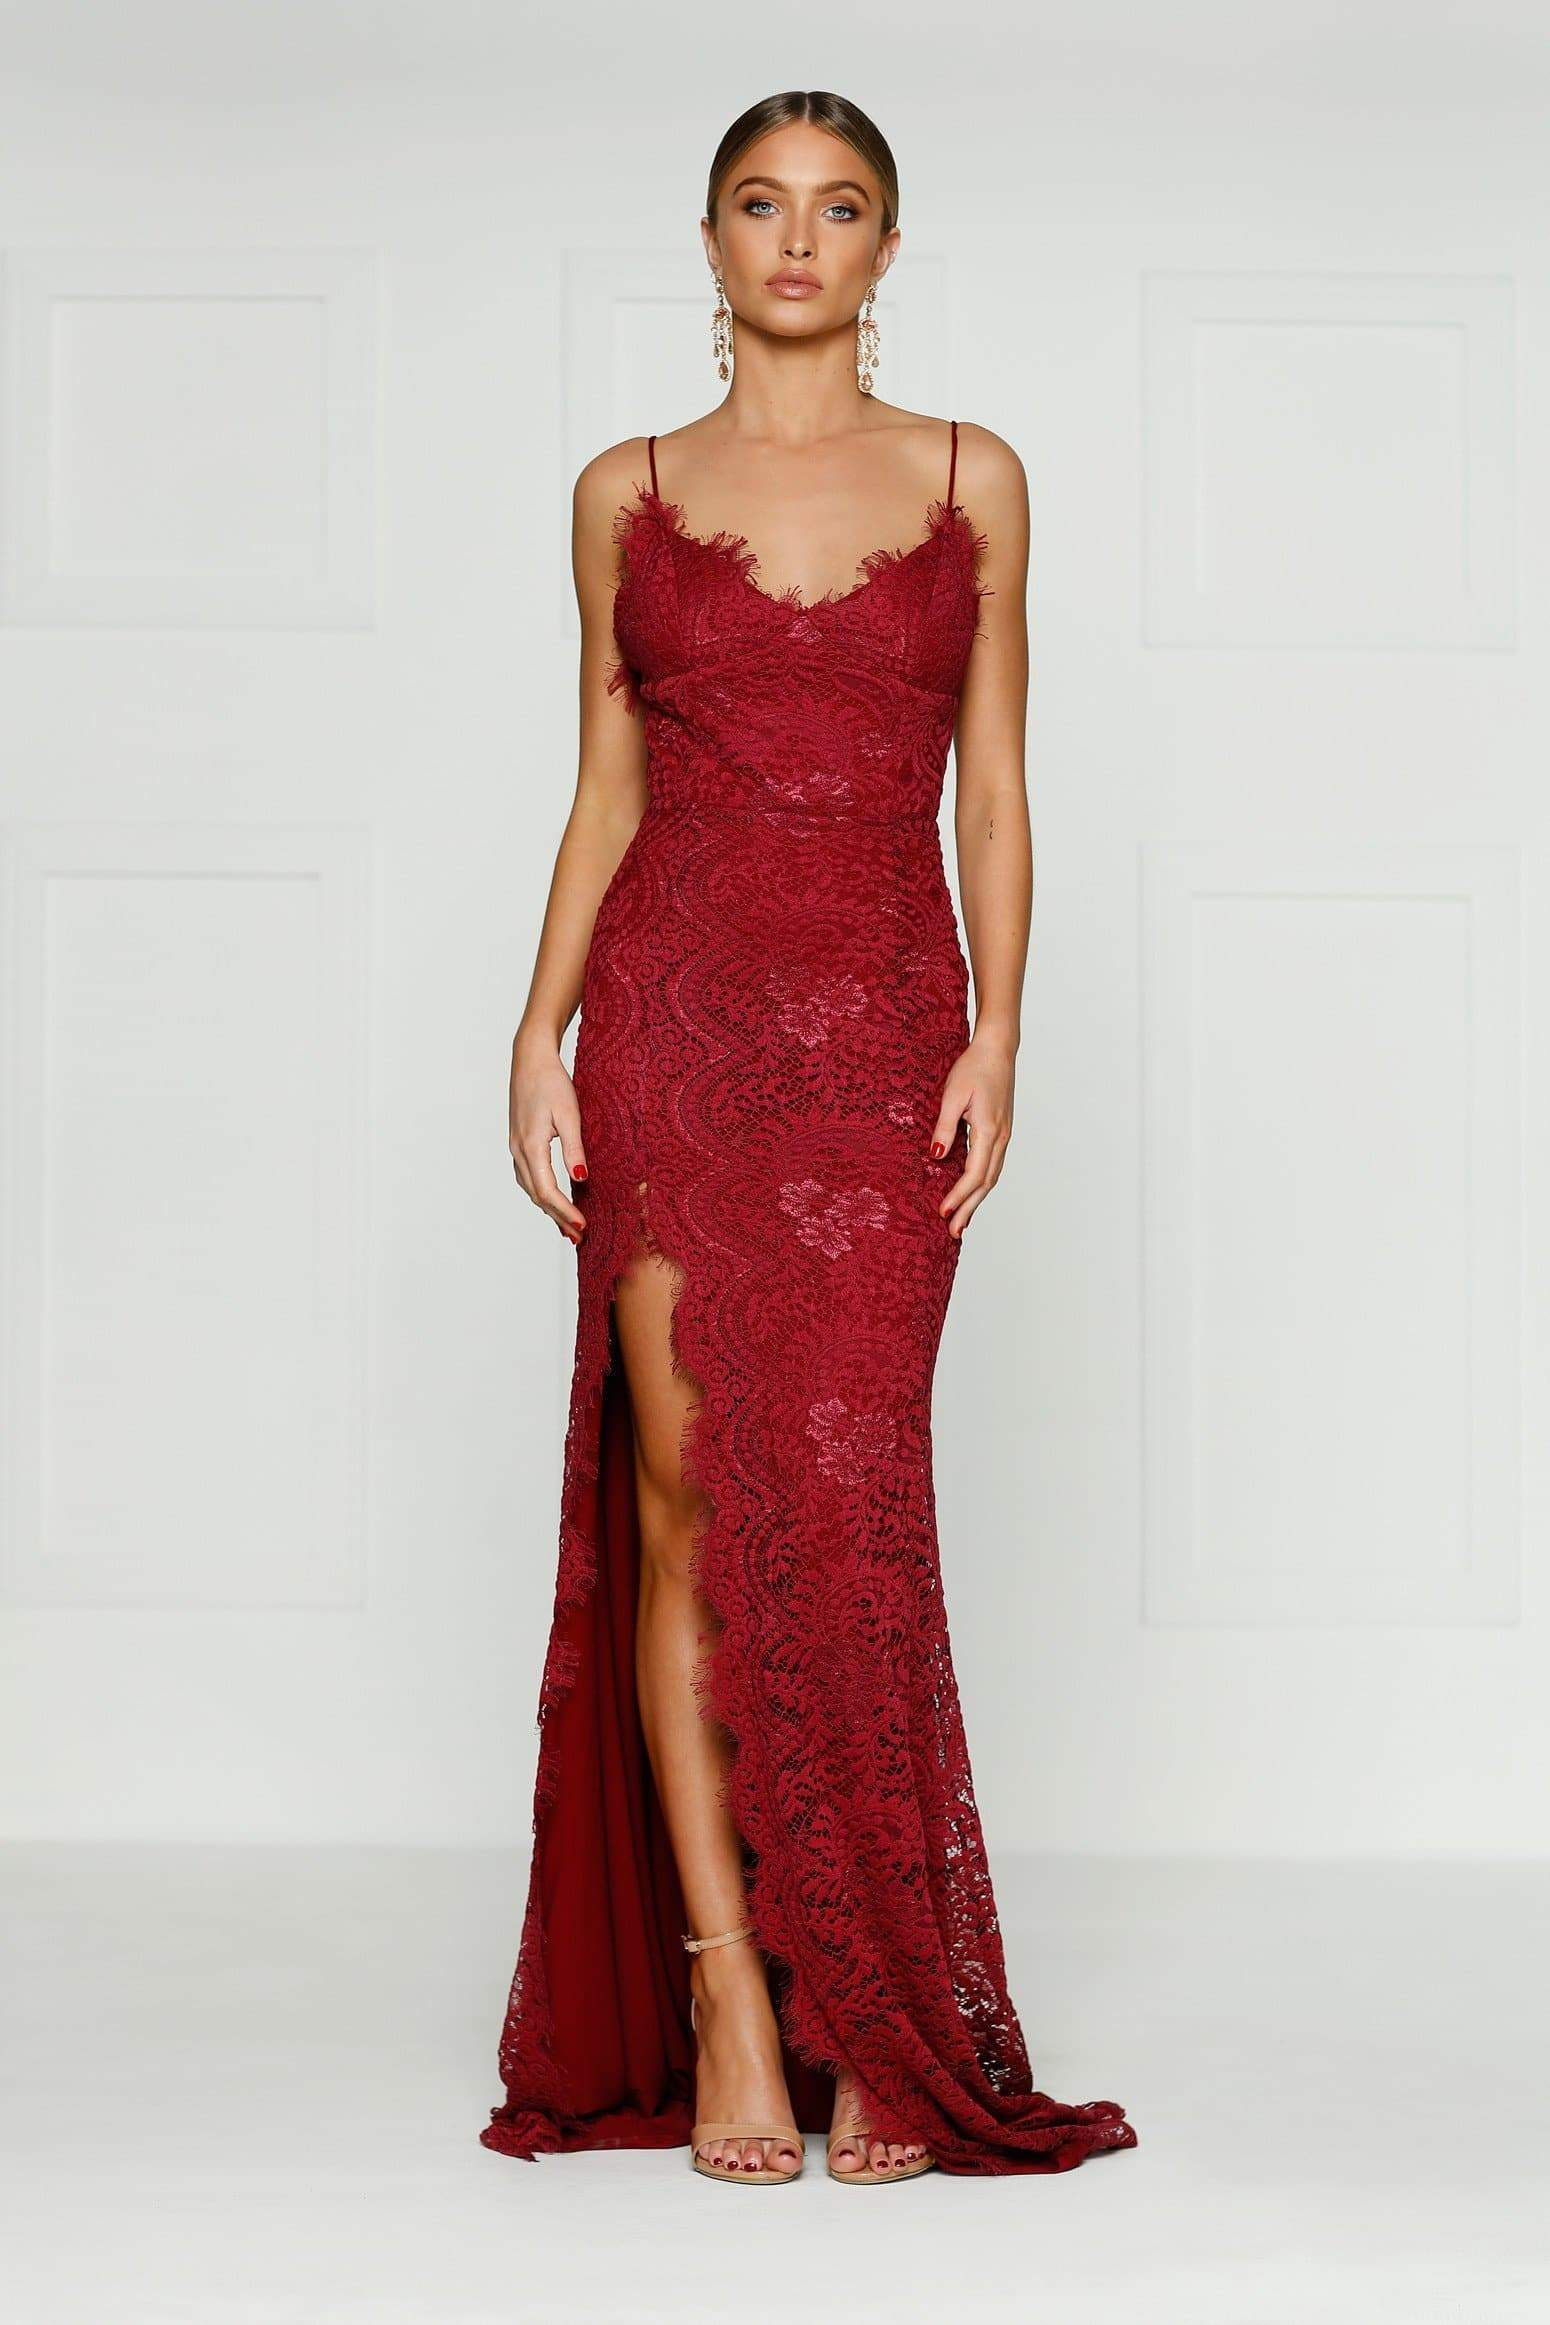 Layali Lace Gown - Burgundy Prom Dress with Lace Overlay